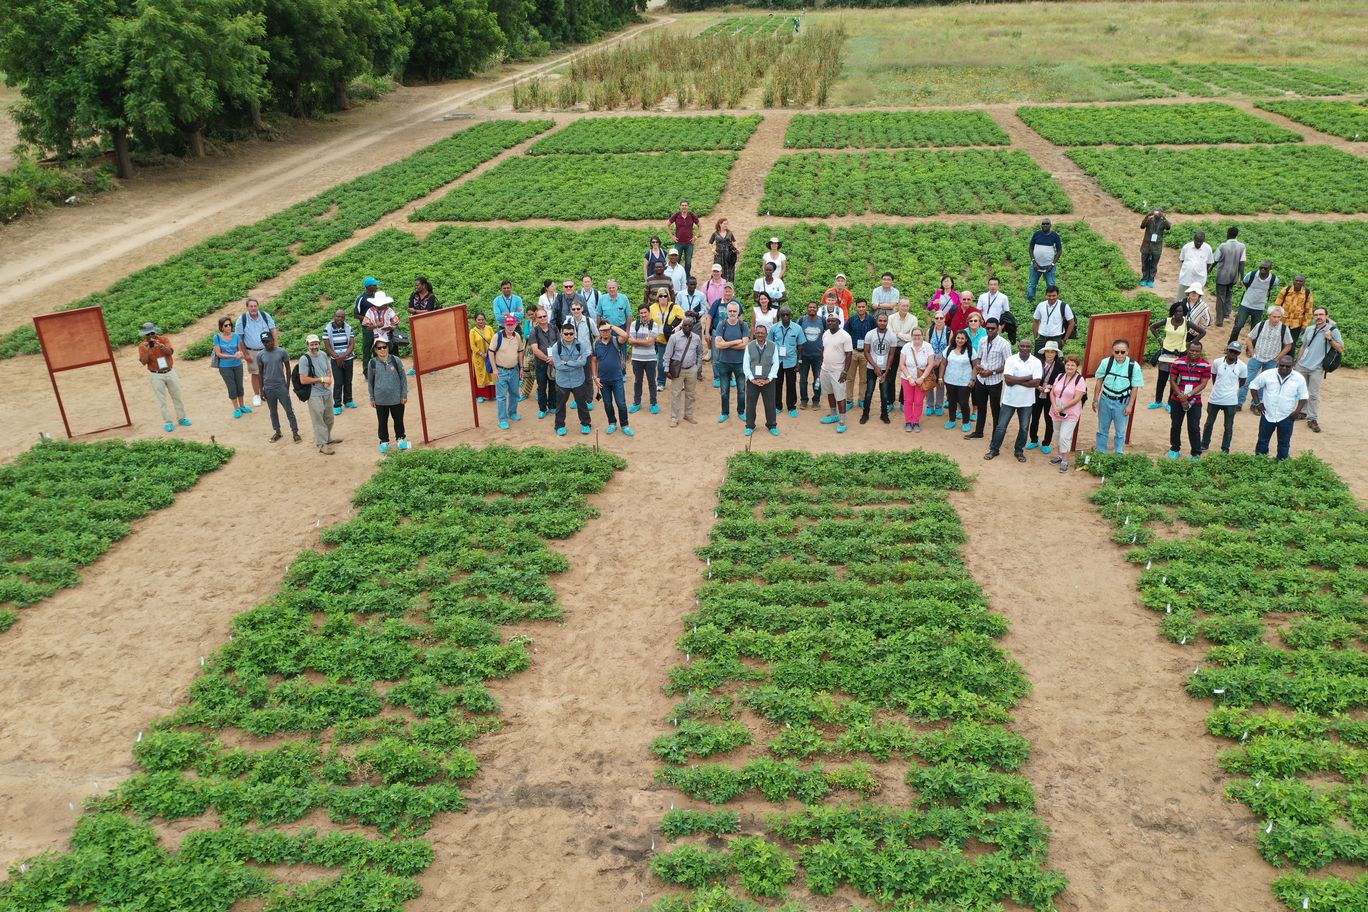 African peanut breeders stand in a field in Senegal in 2018, where seeds are replicated for a project to map the genetic diversity of lines grown on the continent. Working with the Feed the Future Peanut Innovation Lab headquartered at the University of Georgia, scientists genotyped hundreds of lines of peanuts grown across Africa.